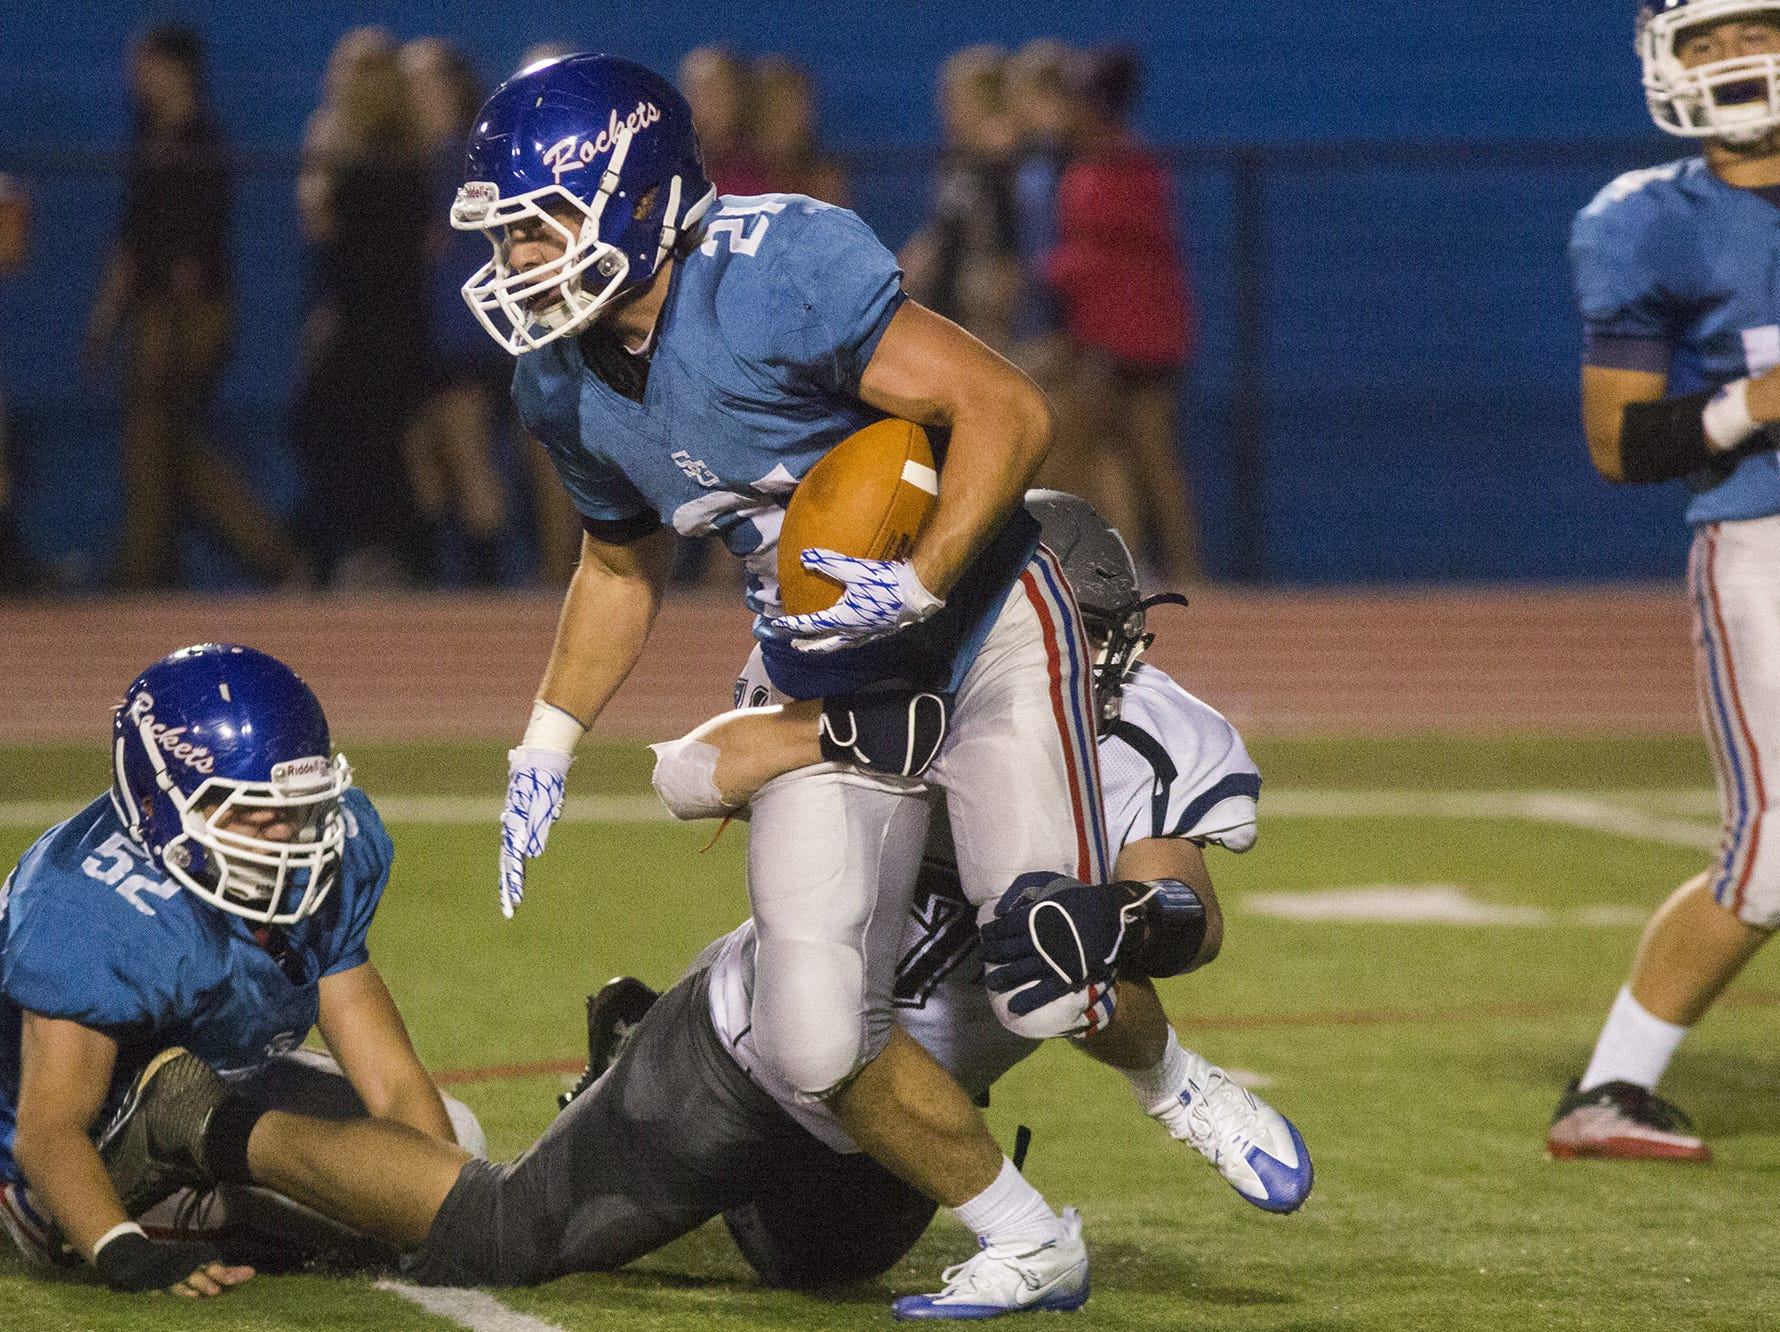 Dallastown's Raymond Christas, bottom center, tackles Spring Grove's Ryan Daugherty behind the line of scrimmage.